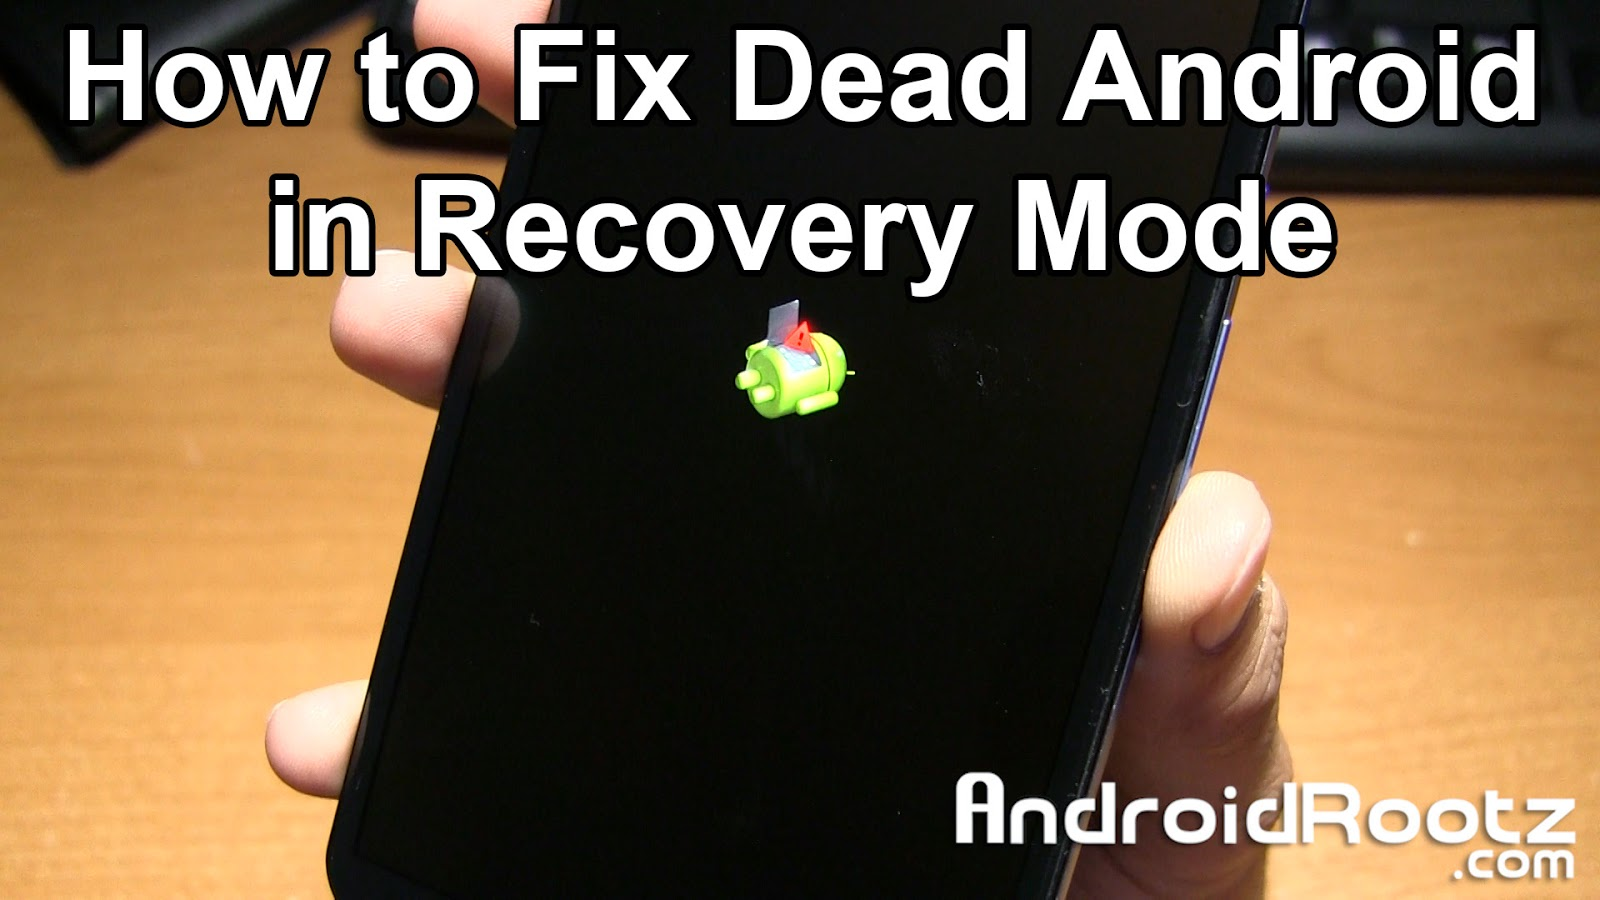 How to Fix Dead Android in Recovery Mode on Nexus 6! ~ AndroidRootz